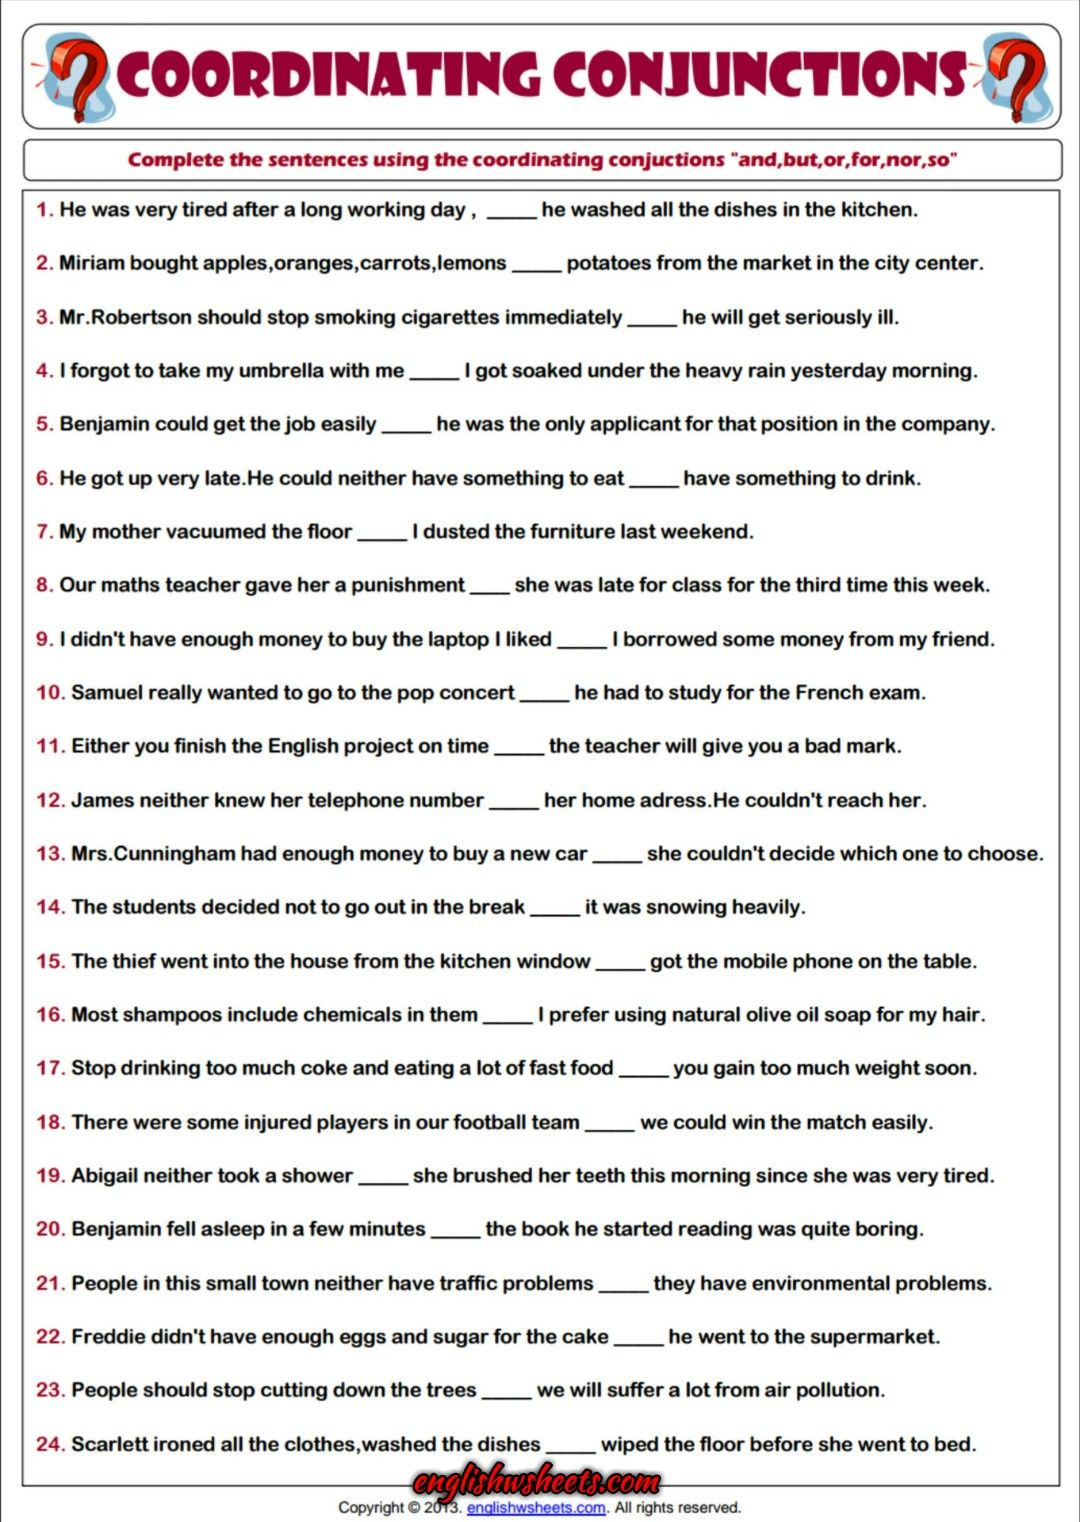 Correlative Conjunctions Worksheet 5th Grade Coordinating Conjunctions Esl Printable Grammar Worksheet